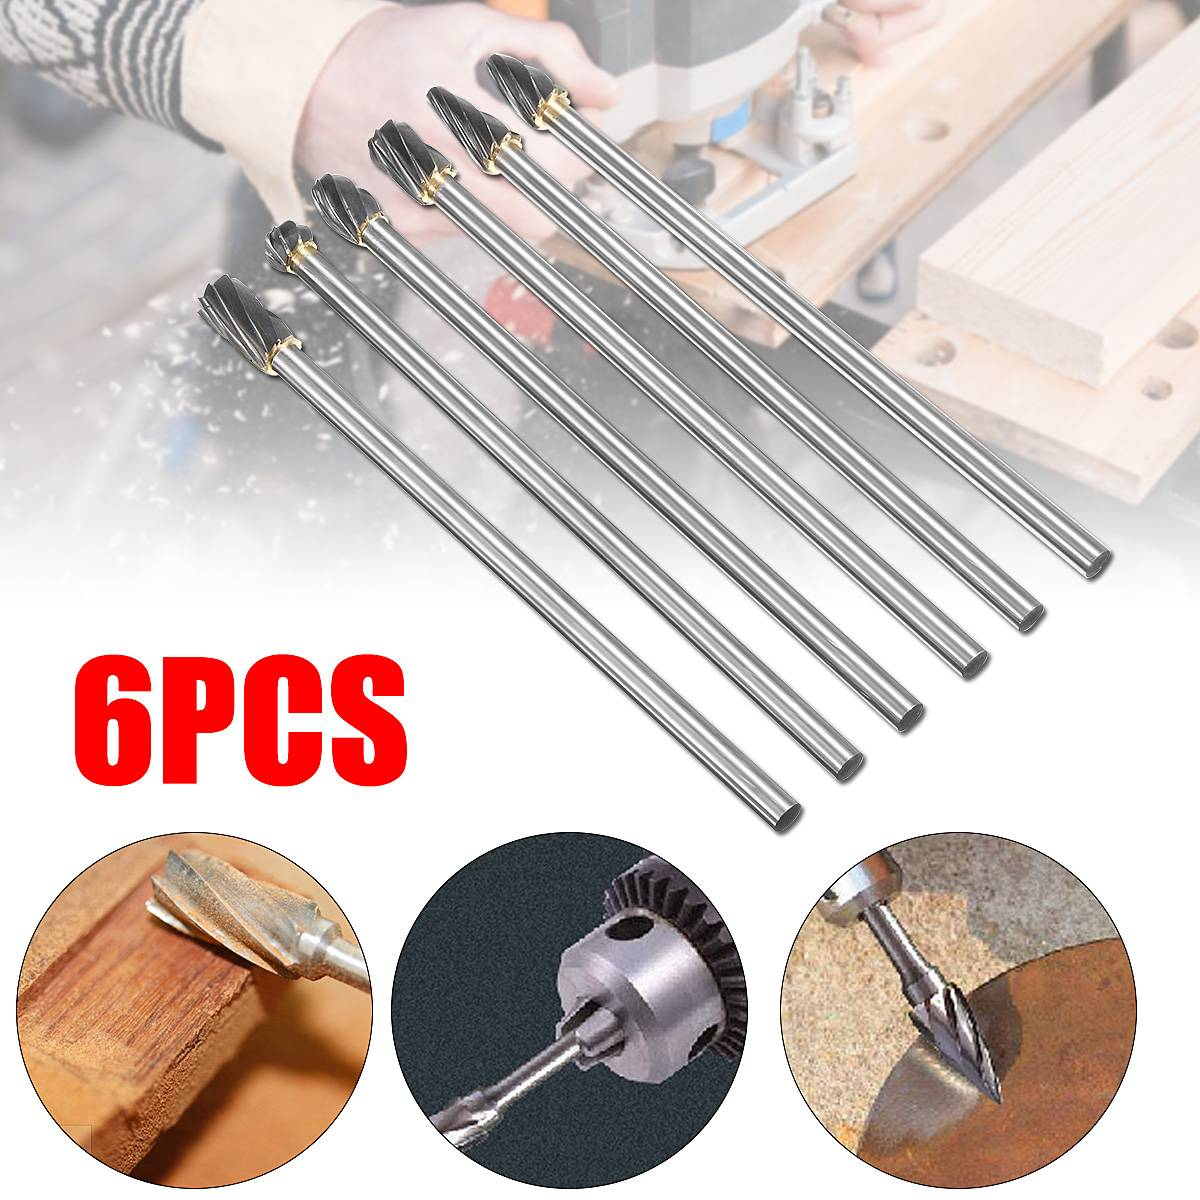 6Pcs High Quality Efficiency 150mm Long 6 X 10mm Tungsten Carbide ALUMINUM CUT Rotary Burr Burs 6mm Shaft Power Tools Drill Bit